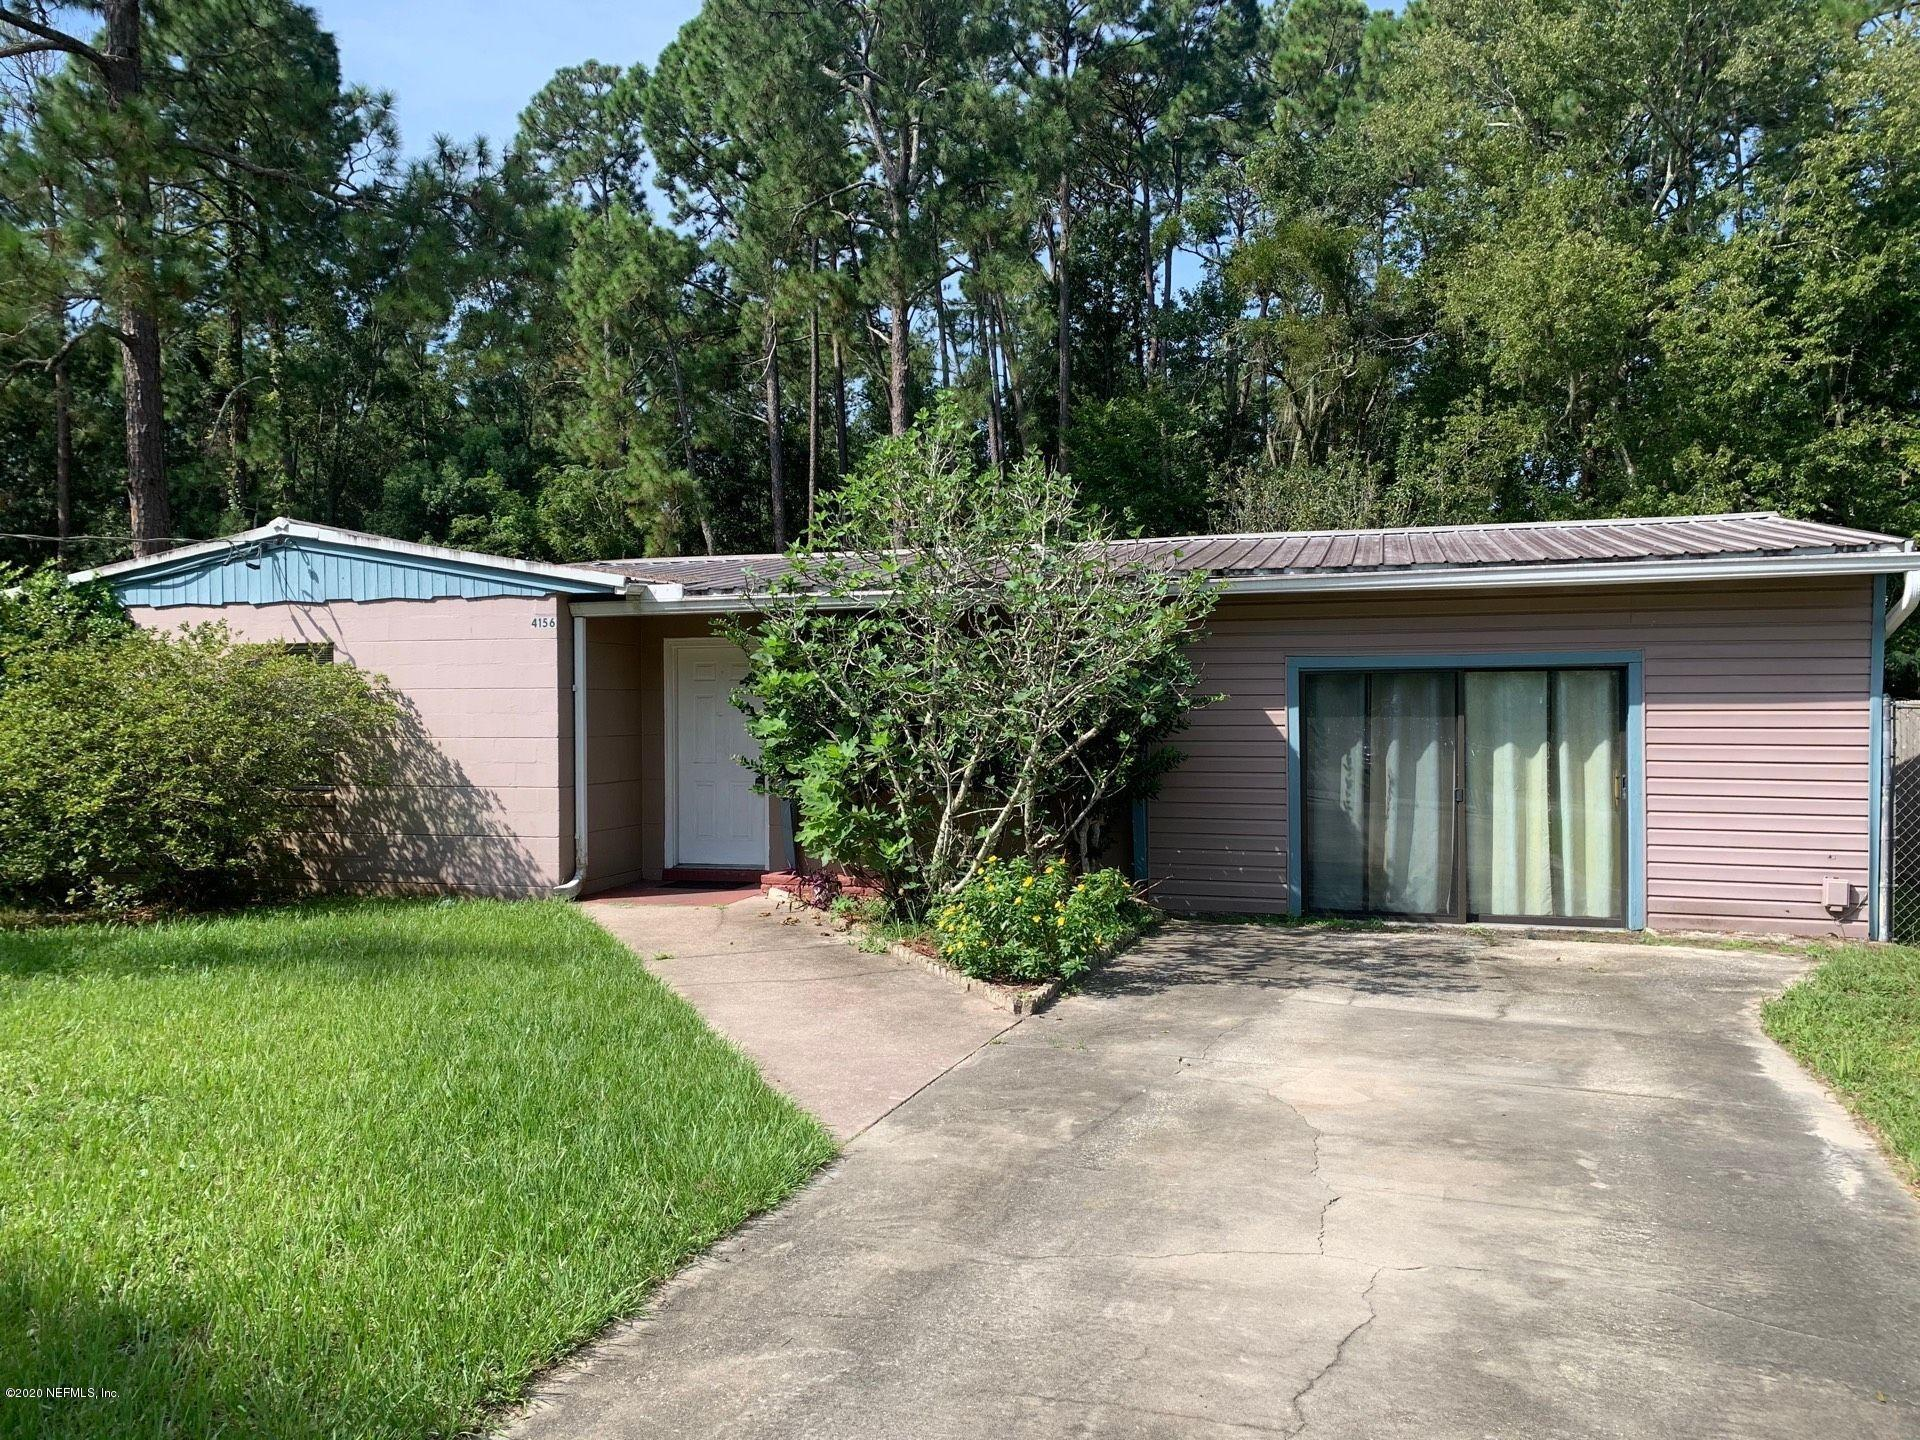 4156 EVE, JACKSONVILLE, FLORIDA 32246, 3 Bedrooms Bedrooms, ,1 BathroomBathrooms,Rental,For Rent,EVE,1078154